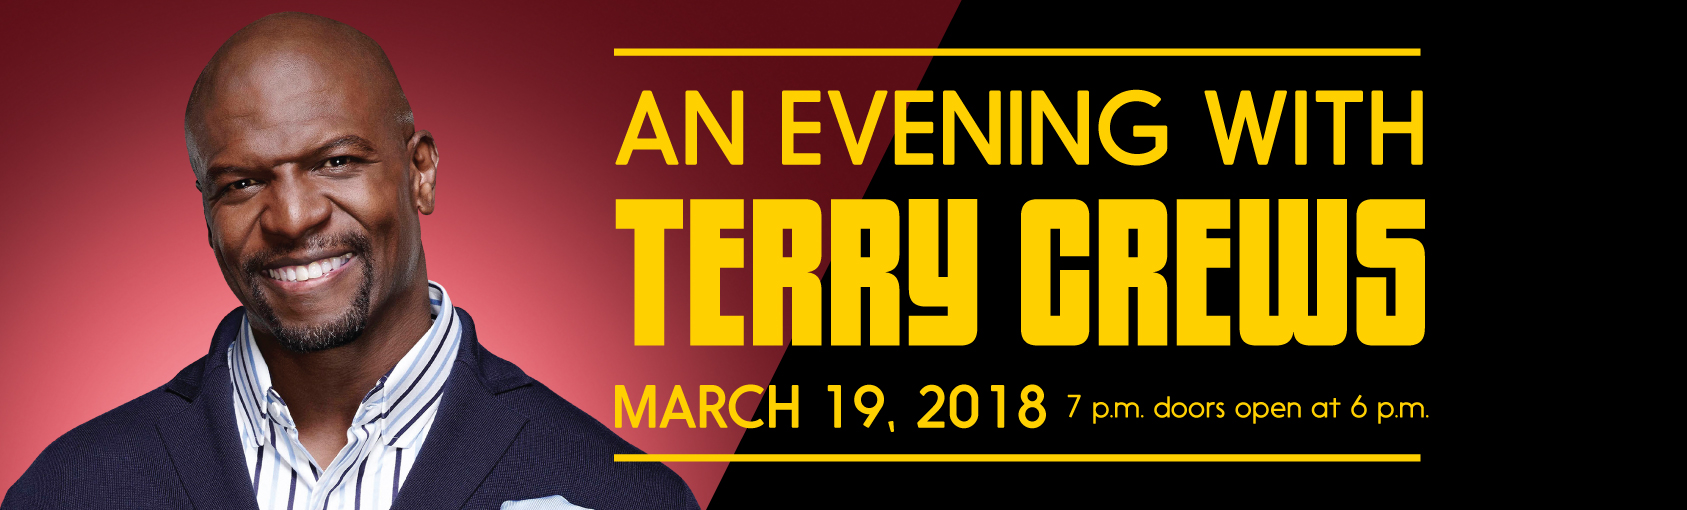 An Evening with Terry Crews banner